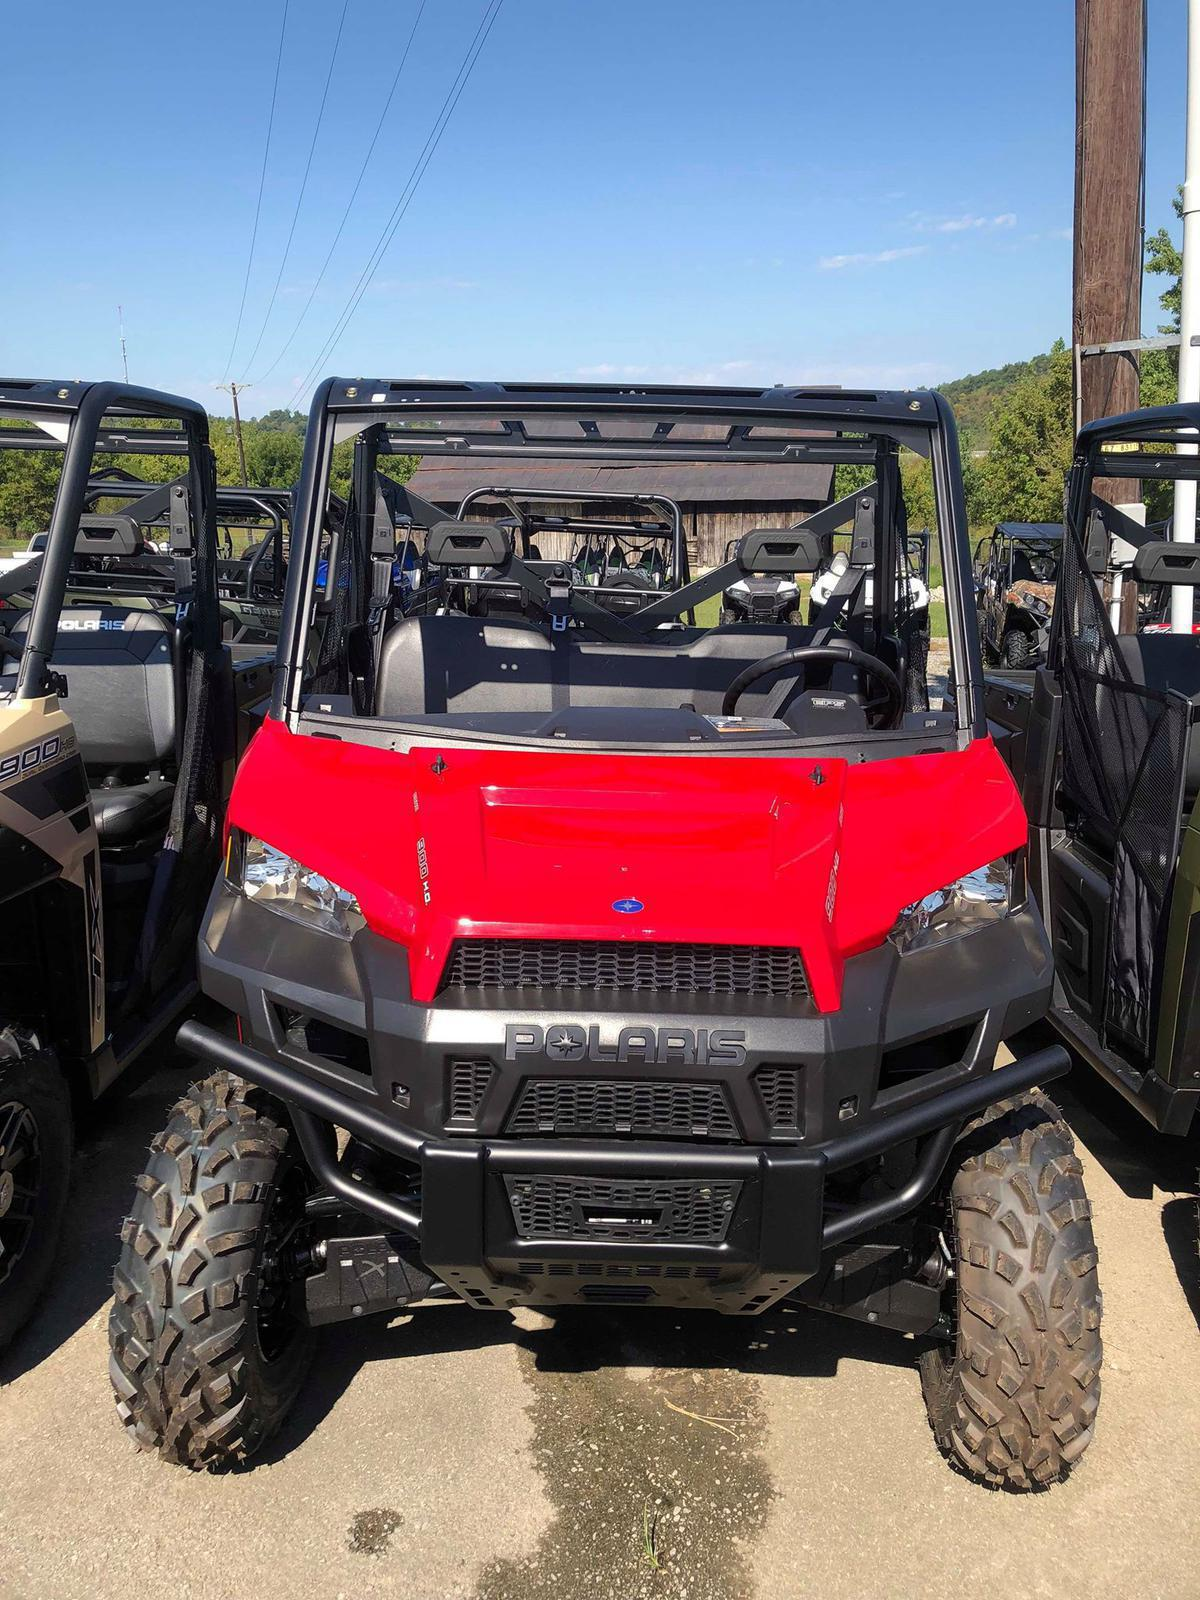 2019 Polaris Industries RANGER XP® 900 EPS - Solar Red for sale in